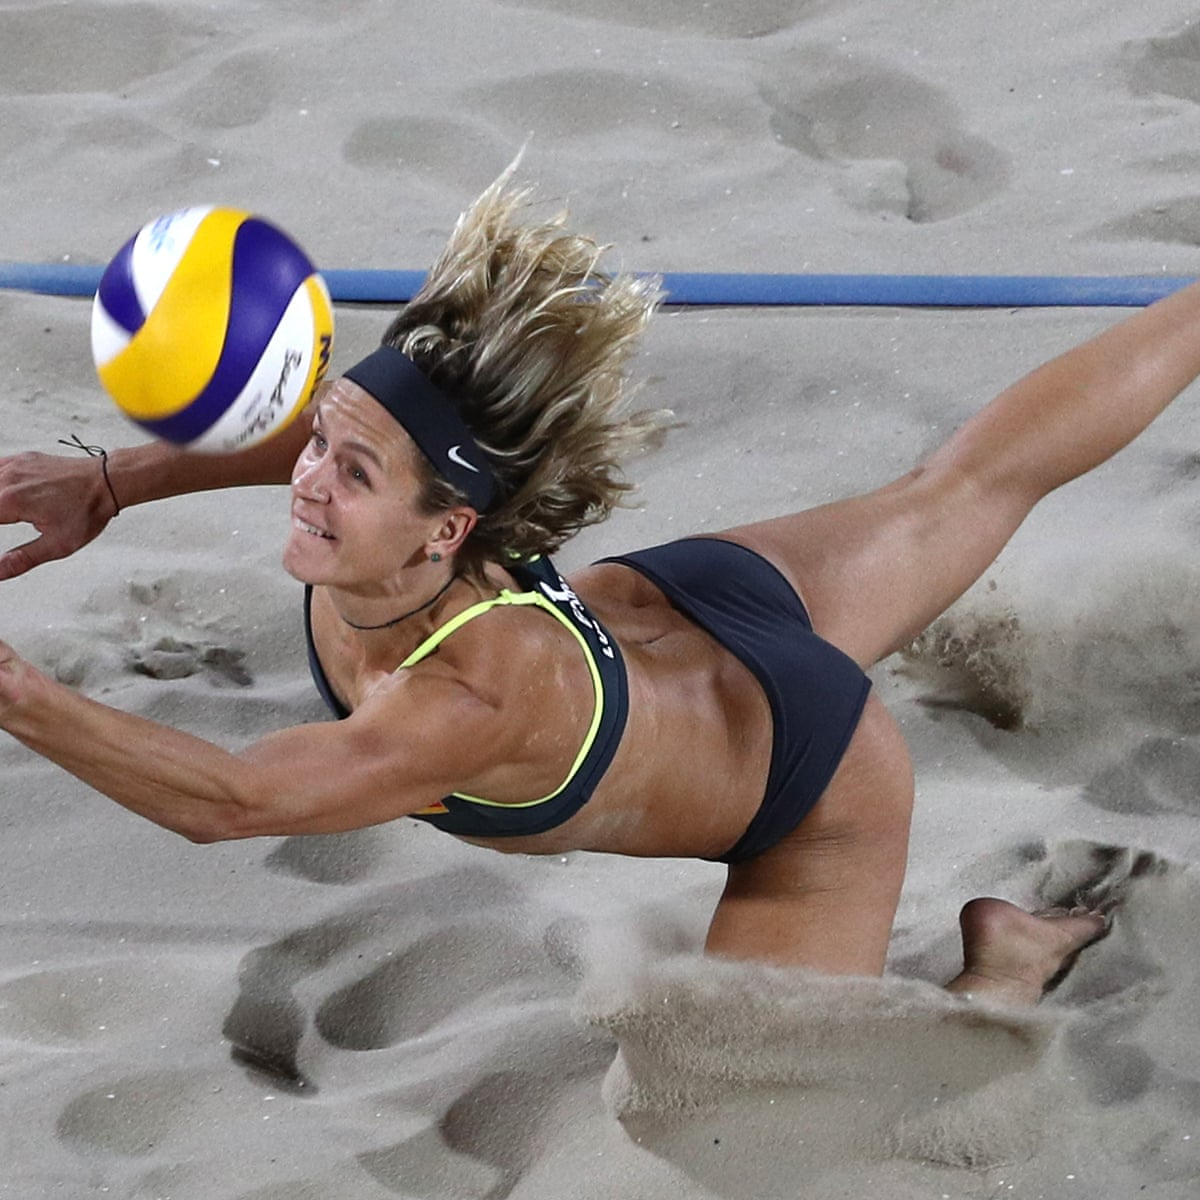 Basketball Is My First Love But The Athleticism Of Beach Volleyball Is Amazing Sport The Guardian